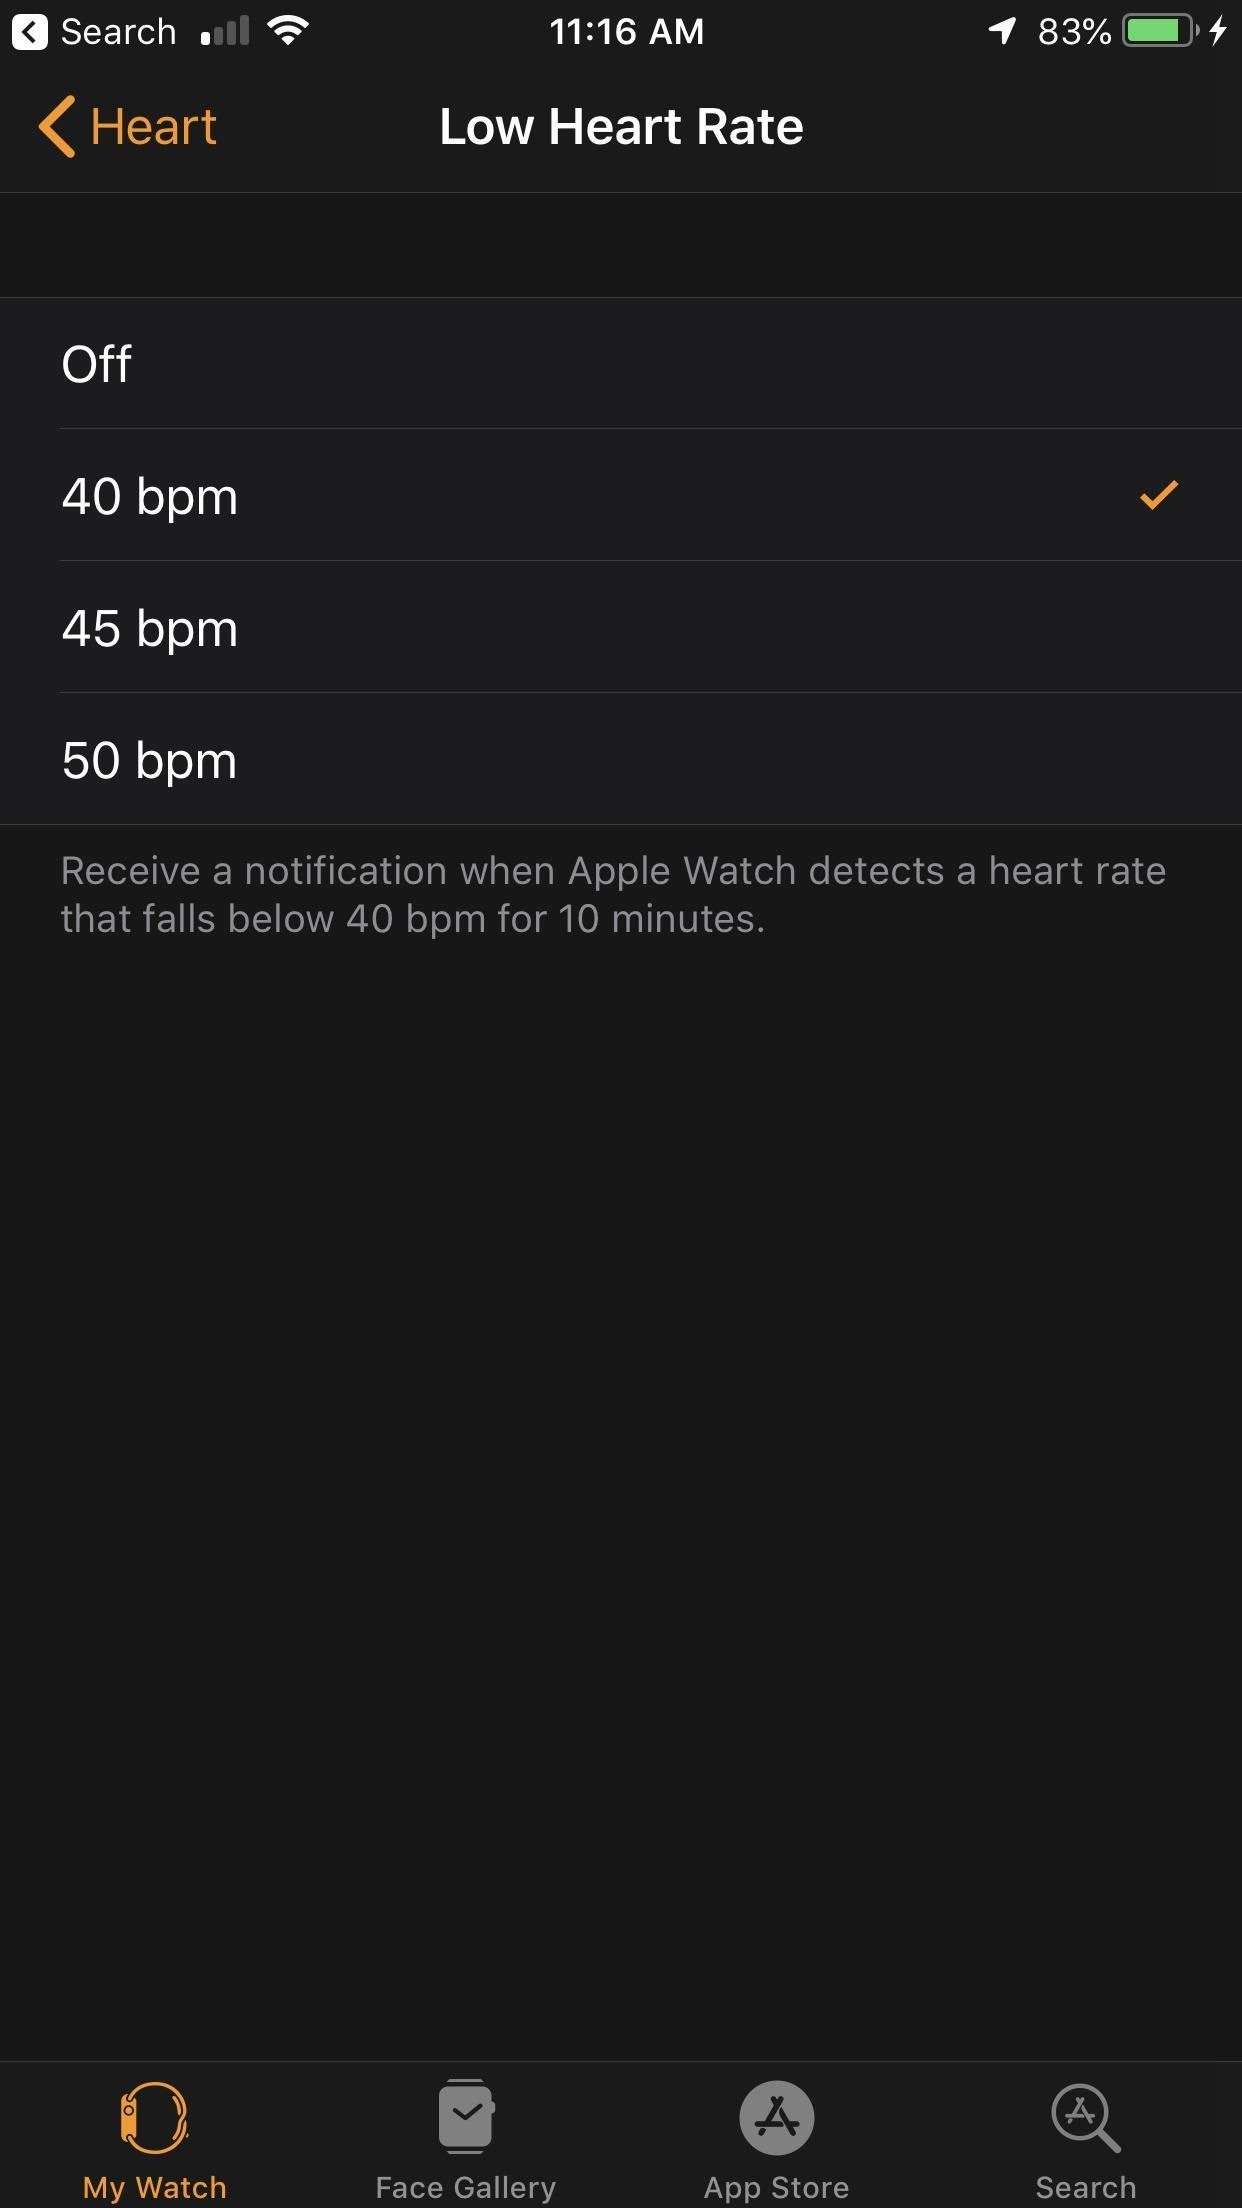 What to Do When You Get a Low Heart Rate Notification on Your Apple Watch